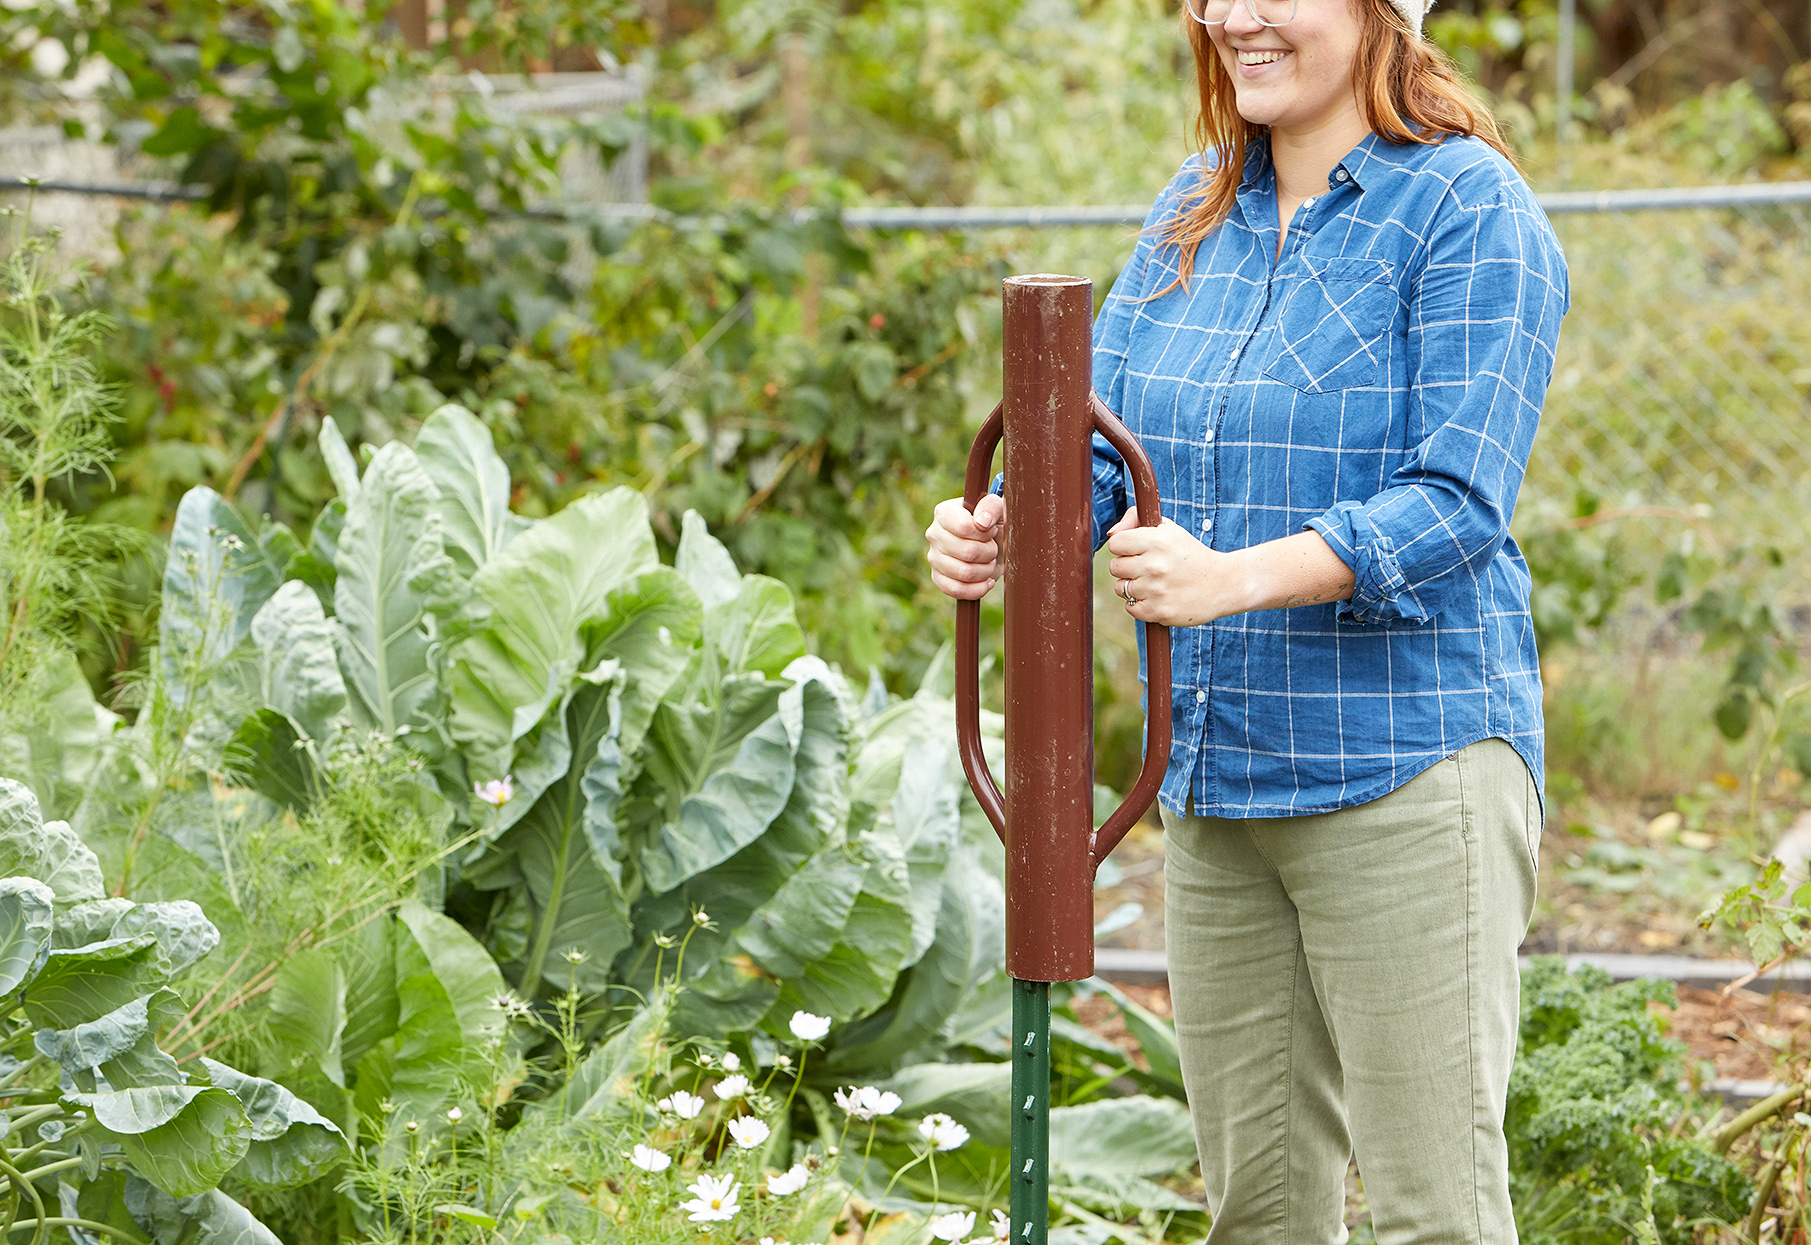 woman using fence post driver in garden